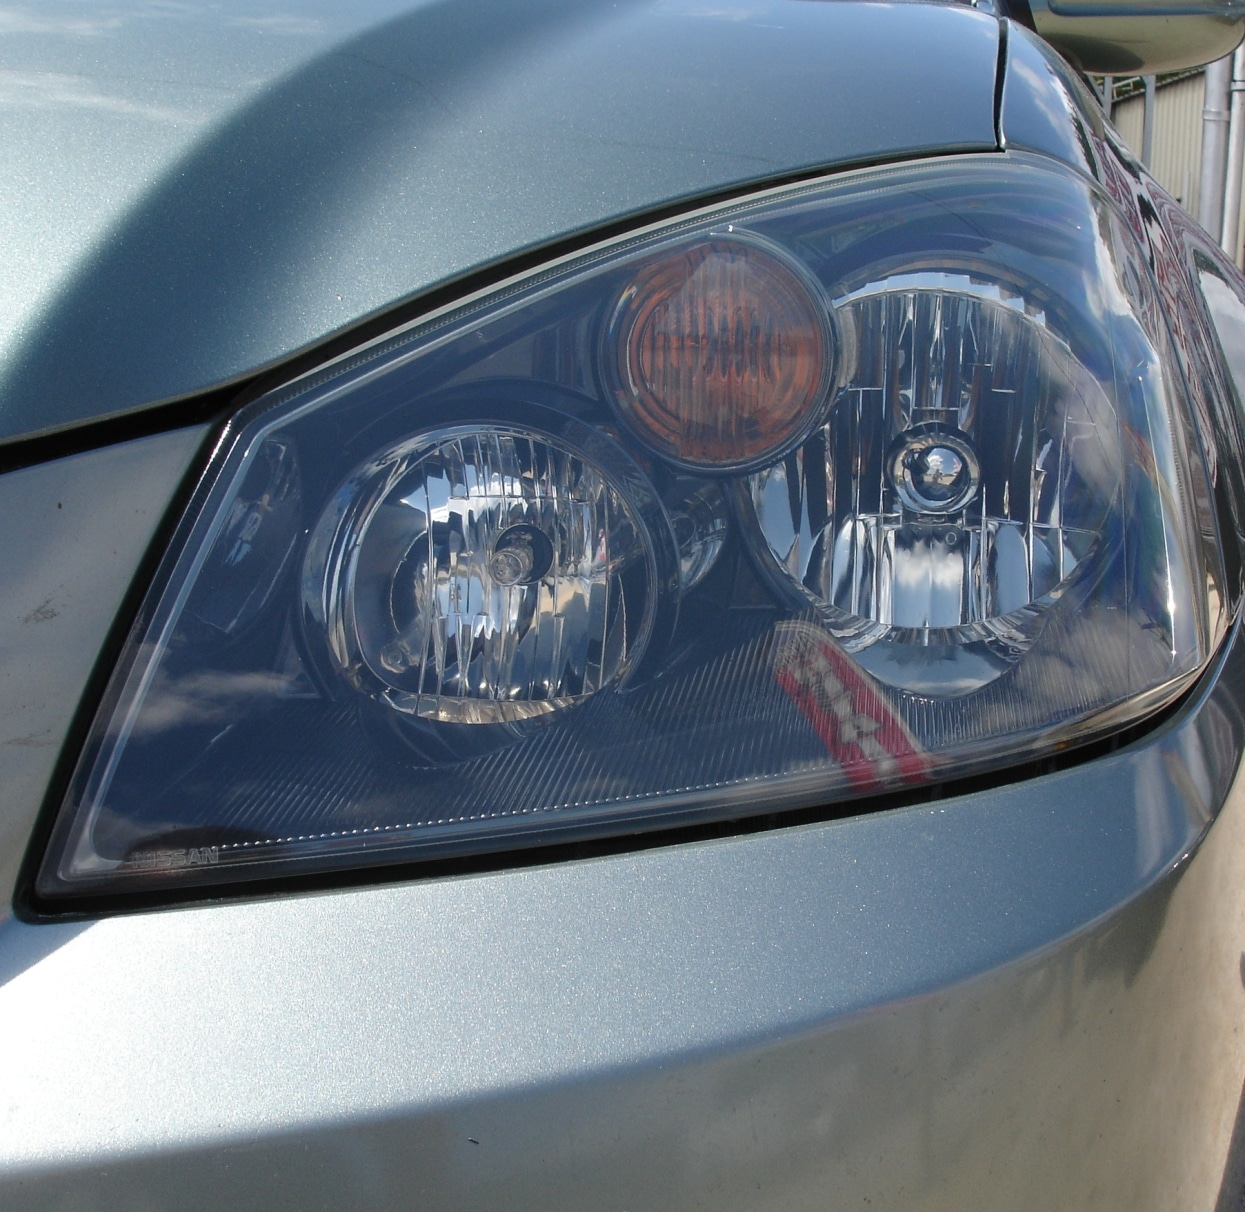 Nissan Headlight Restoration After